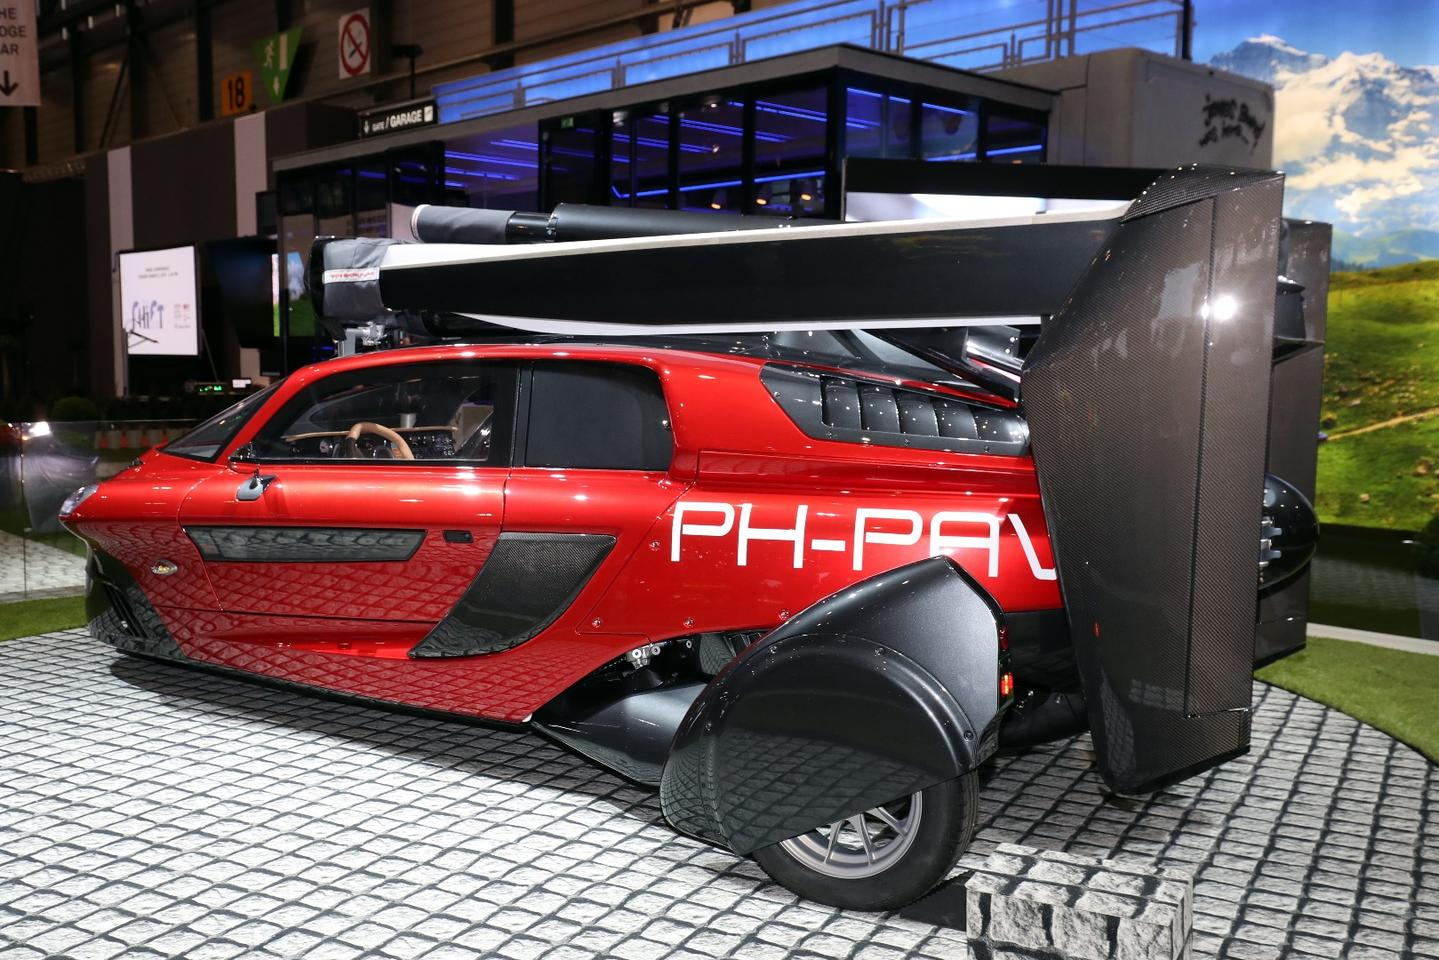 The 9-only, limited-edition PAL-V Pioneer will cost $600,000 and the subsequent Liberty Sport edition comes in at $400,000.